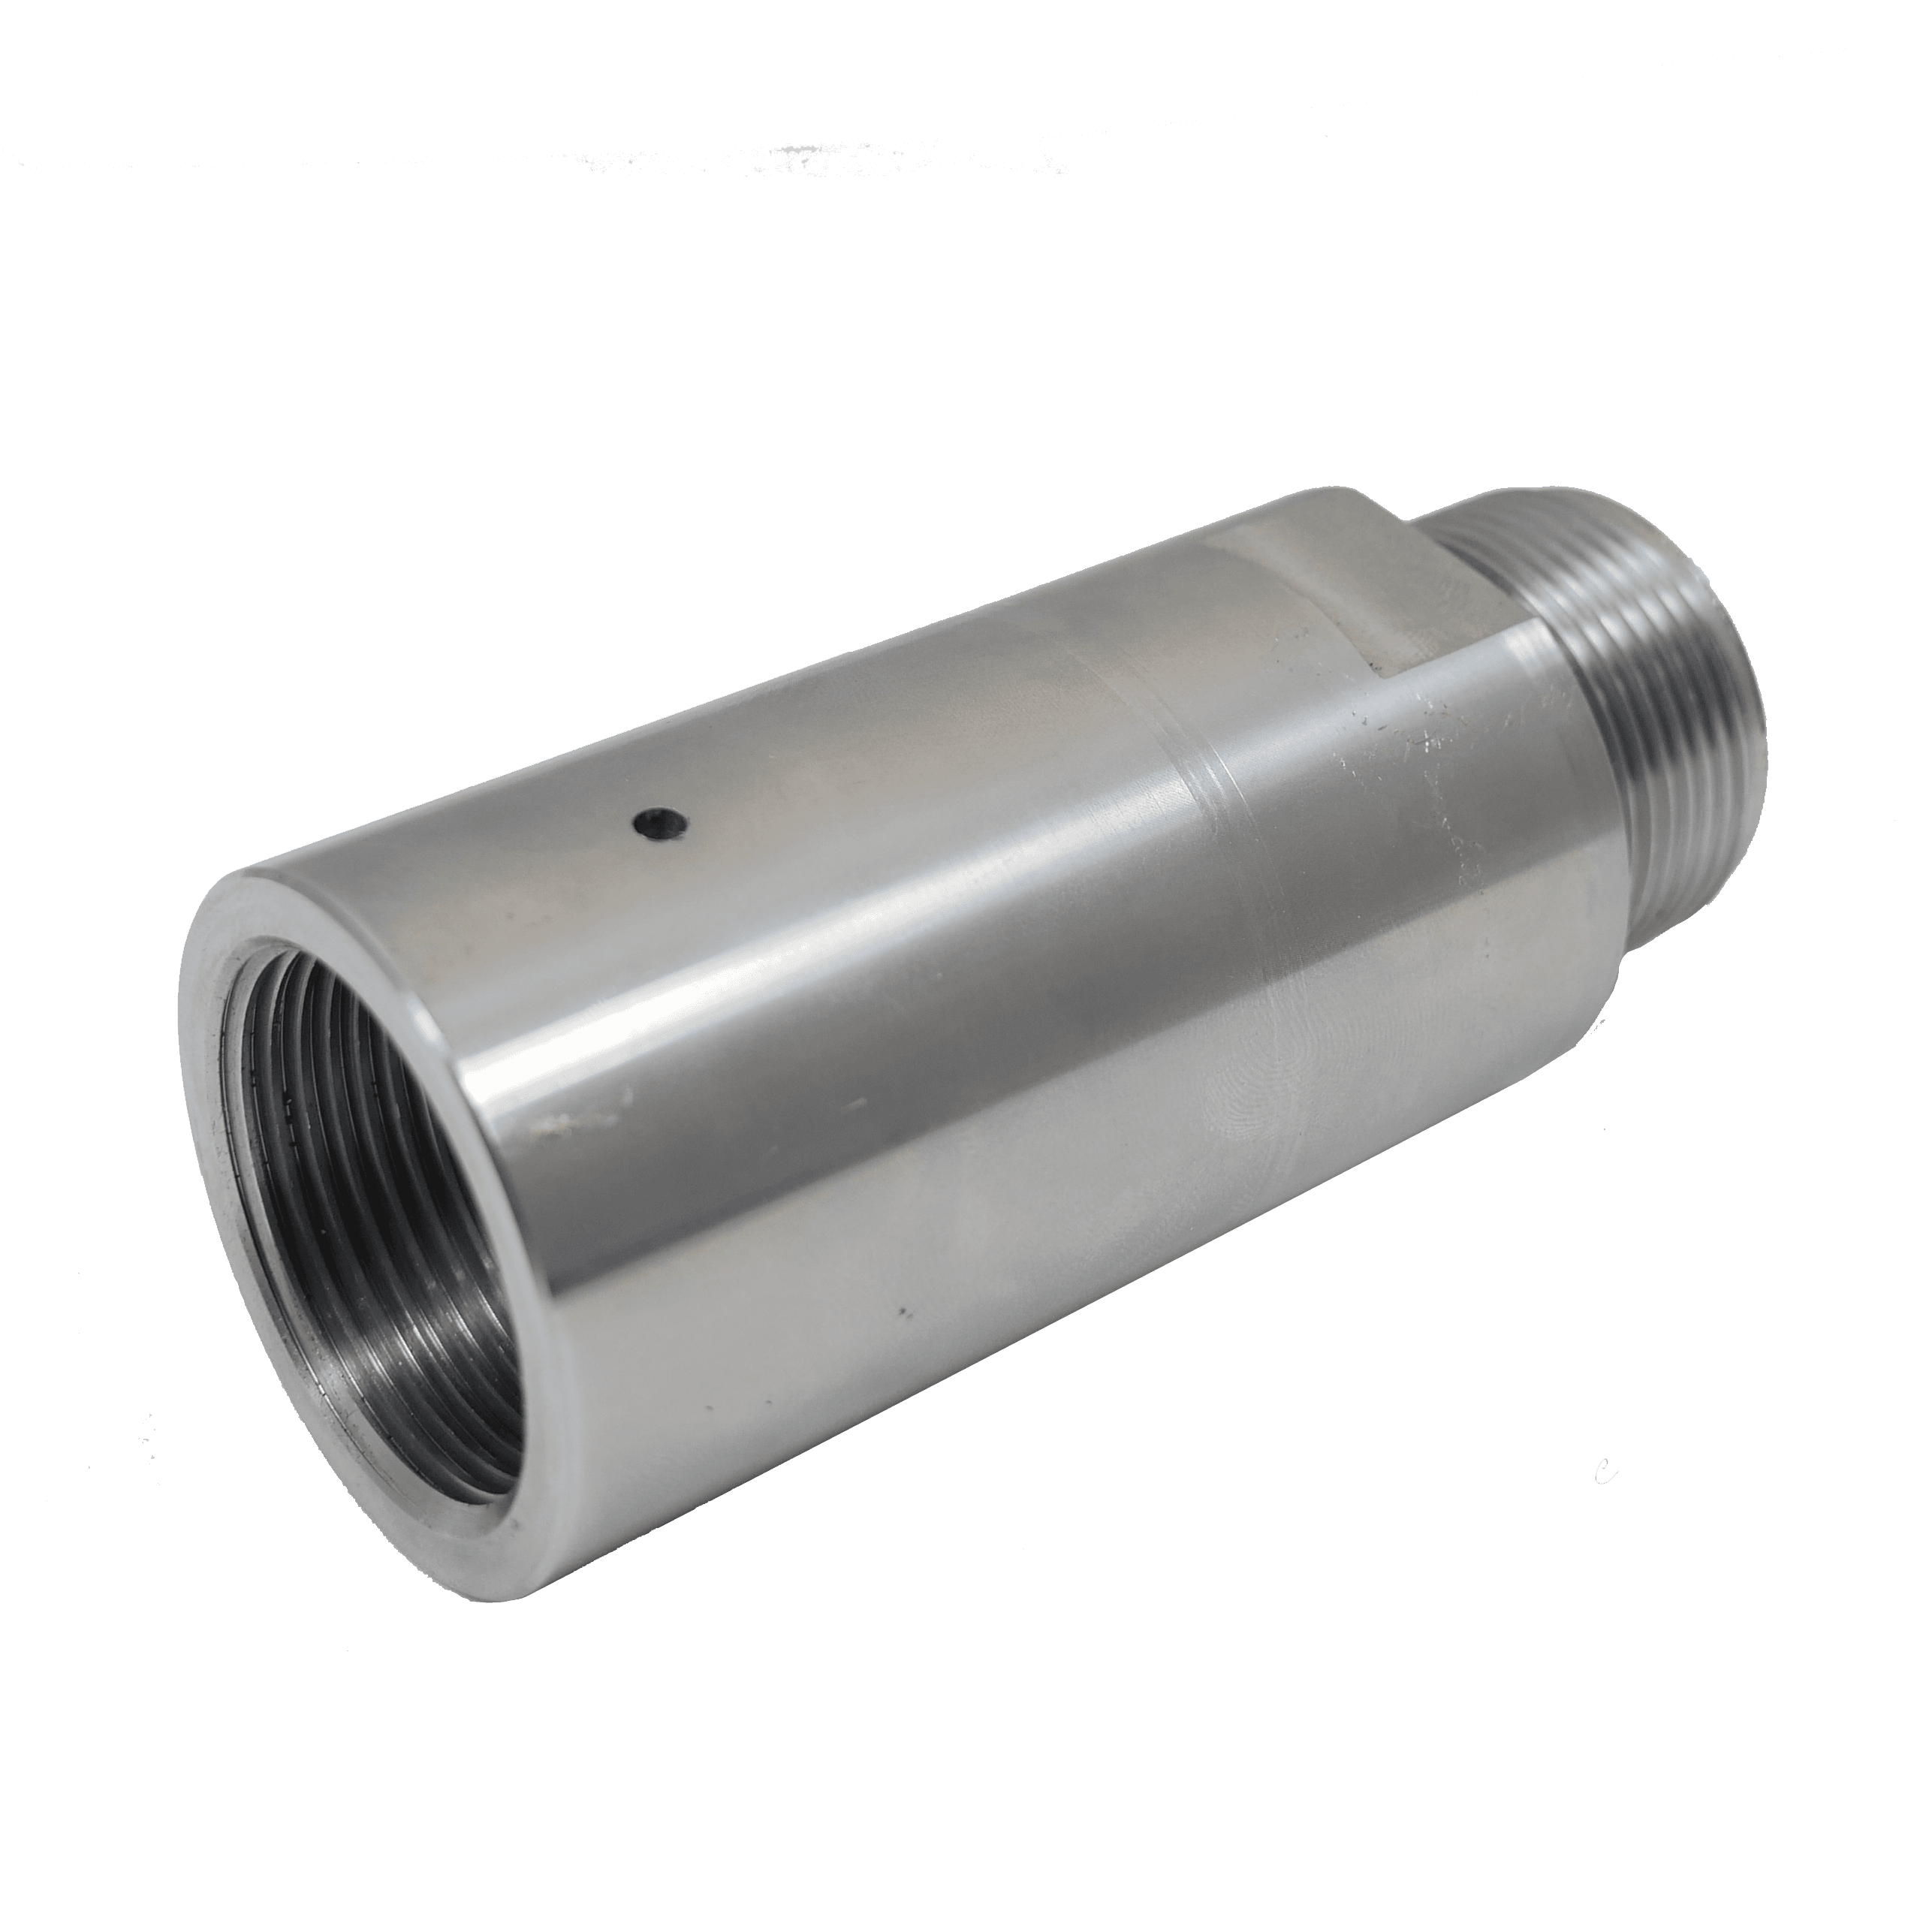 High Pressure Adapters Sockets are able to work with a pressure of 1500bar. We deliver all kind of Sockets with Metric, BSP and NPT threads.